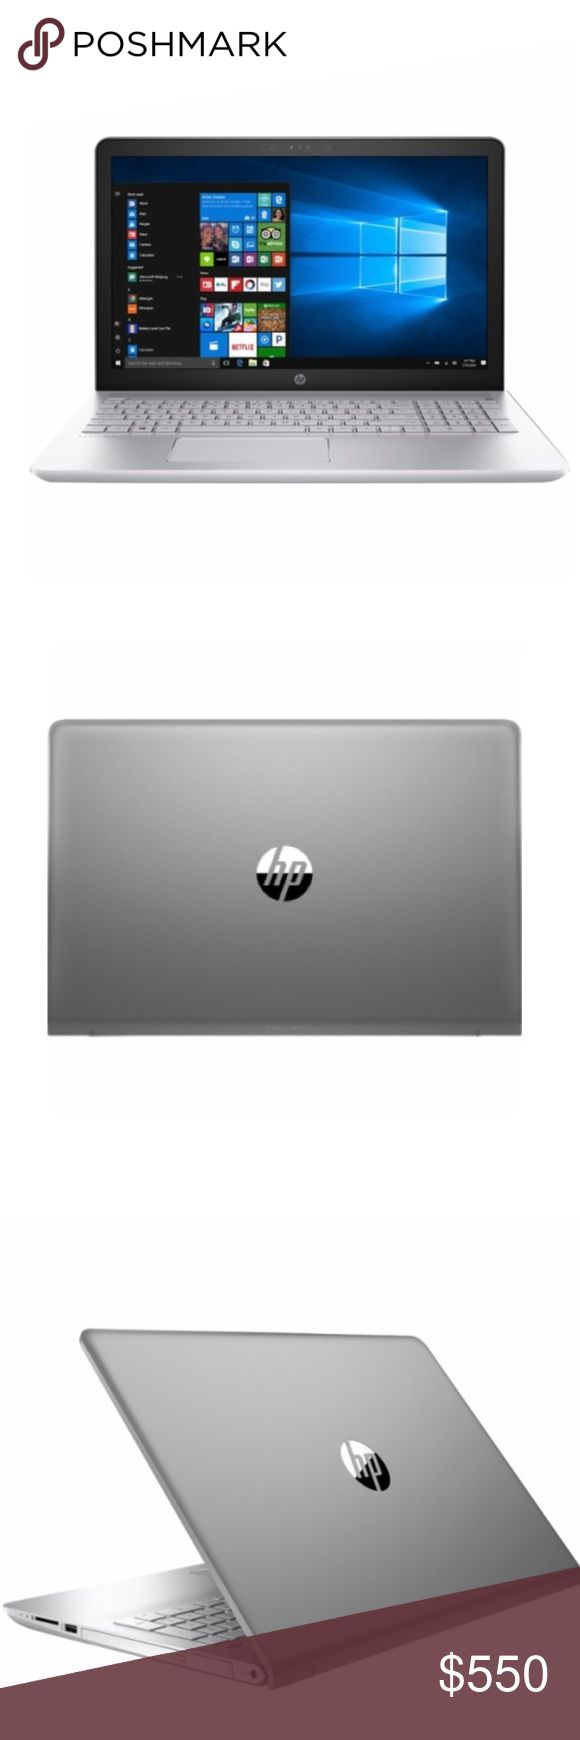 Hp pavilion 2 in 1 touch screen laptop Hp pavilion laptop 15.6 - 2 in 1 touch screen intel core i3 8gb memory 1tb hard drive.  In excellent new condition, nothing is stored in the memory, rarely used.  One year old. hp laptop Other